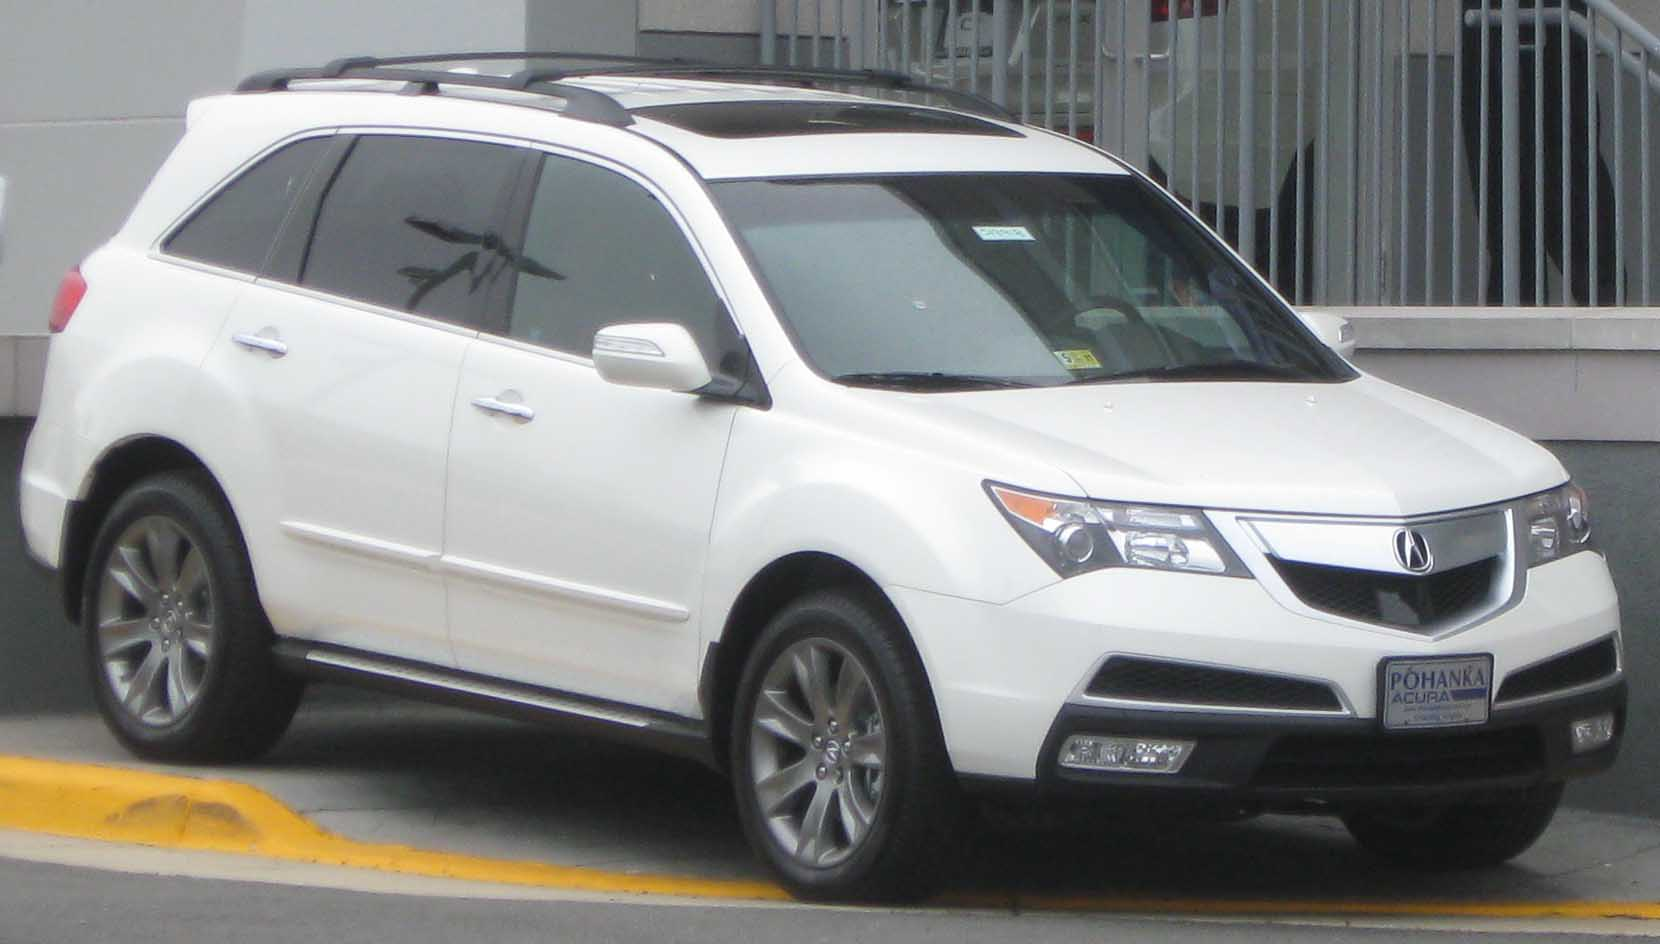 File:2010 Acura MDX -- 06-16-2010.jpg - Wikimedia Commons